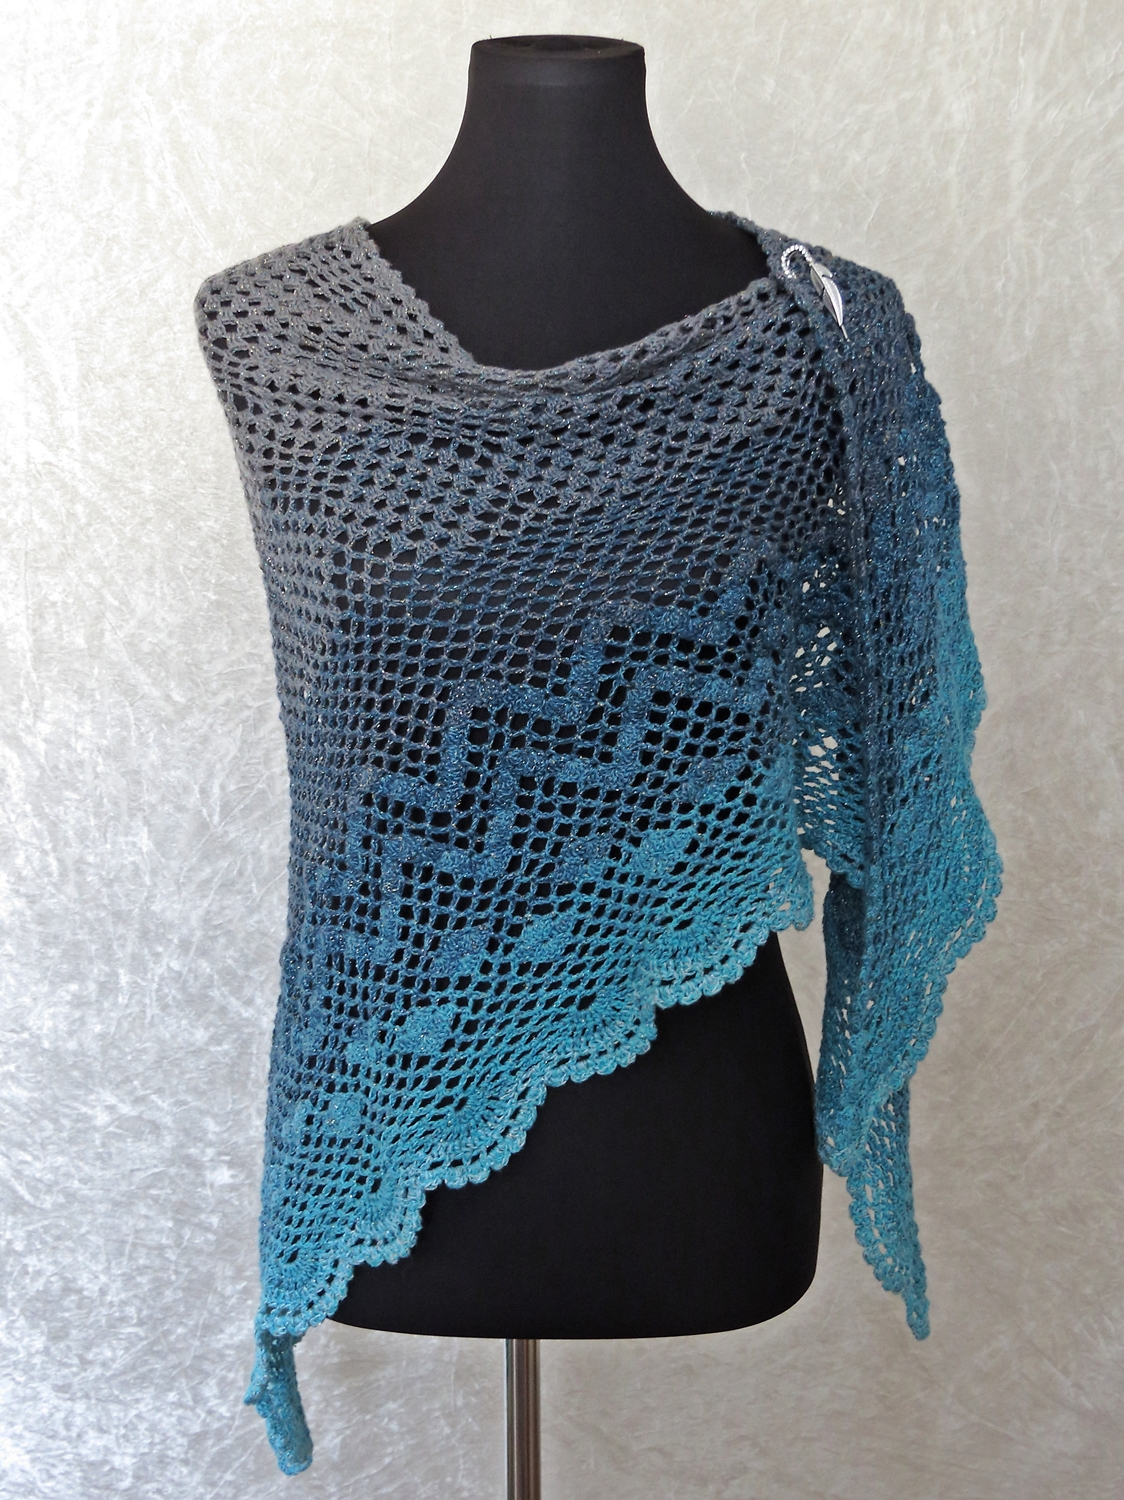 Bottlenose dolphin amigurumi crochet pattern download crochet pattern triangle shawl wrap dance with dolphins immediately at makerist dt1010fo